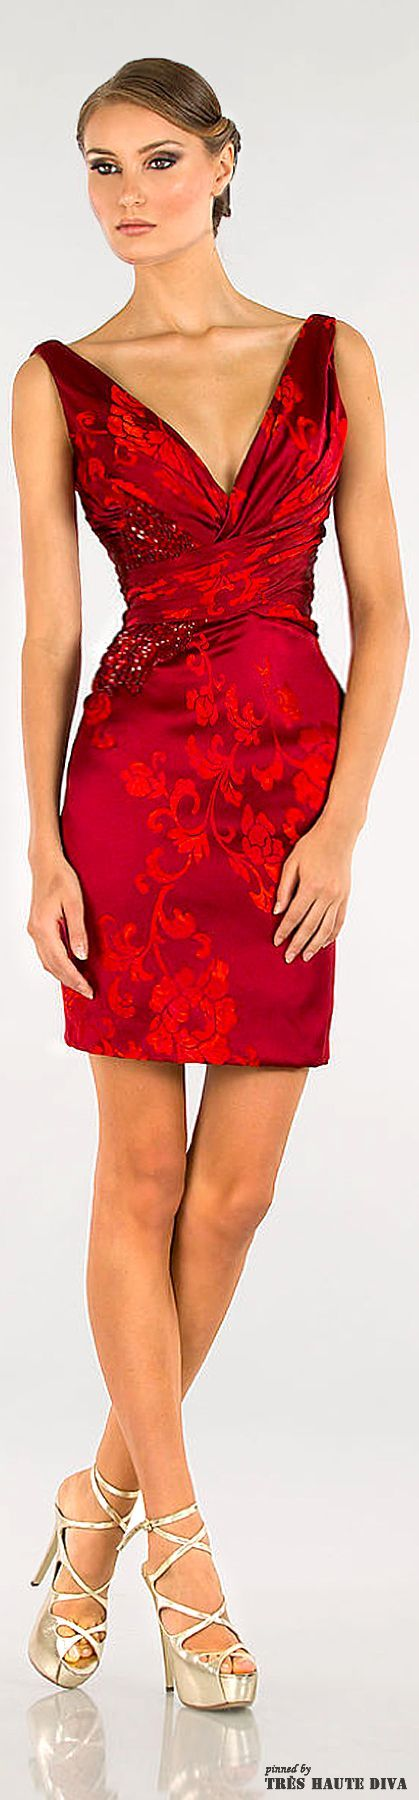 Christmas Red Cocktail Dress - Abed Mahfouz  2014 Women, Men and Kids Outfit Ideas on our website at 7ootd.com #ootd #7ootd